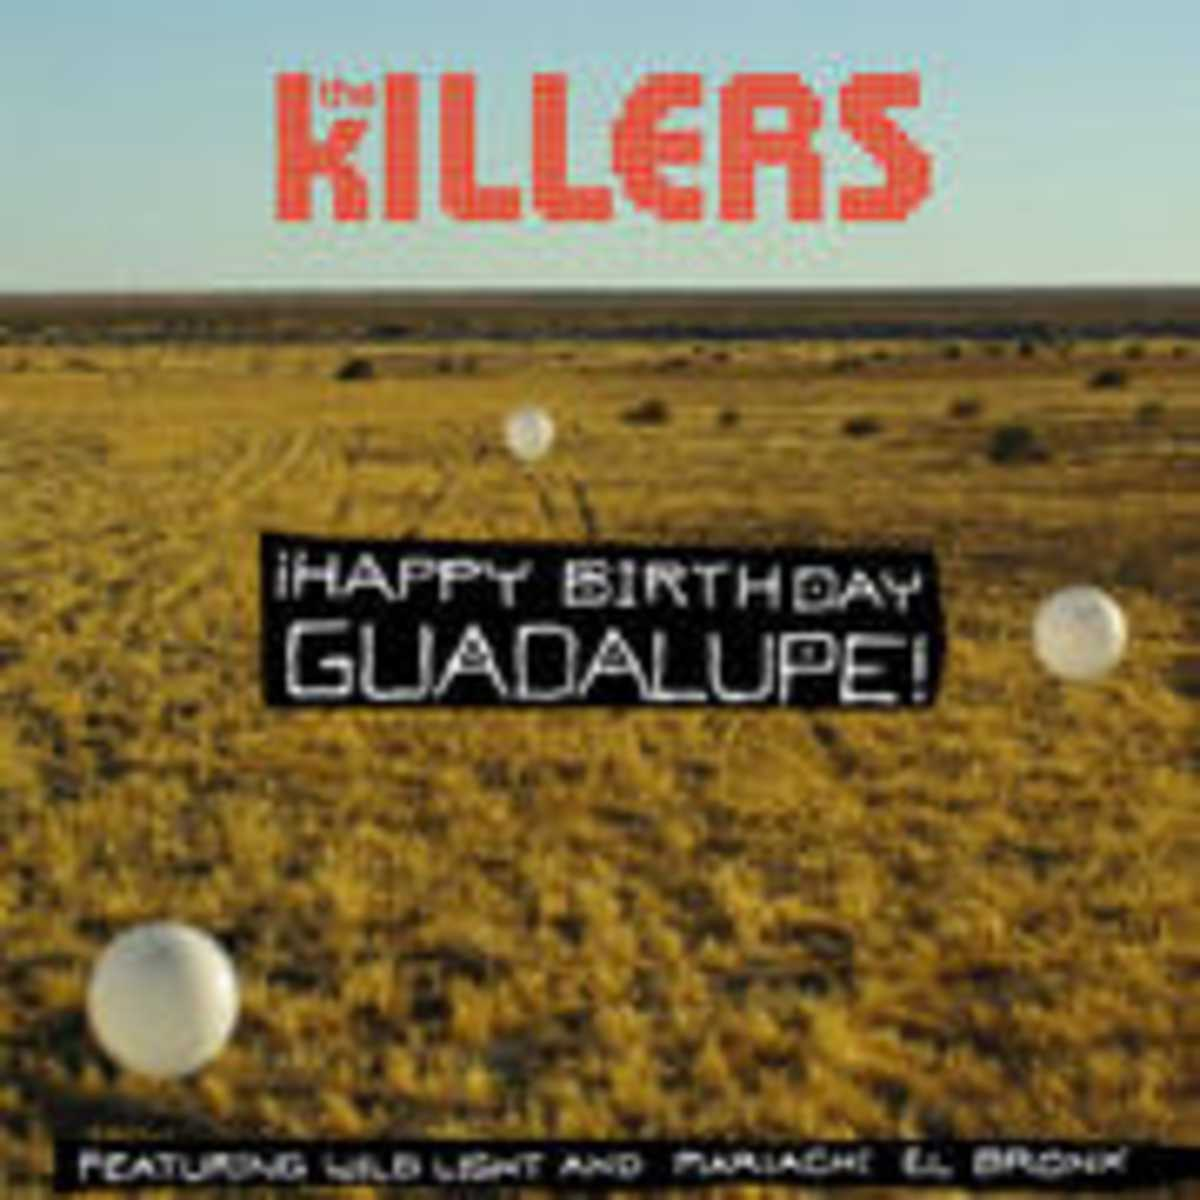 The Killers - Happy Birthday Guadalupe